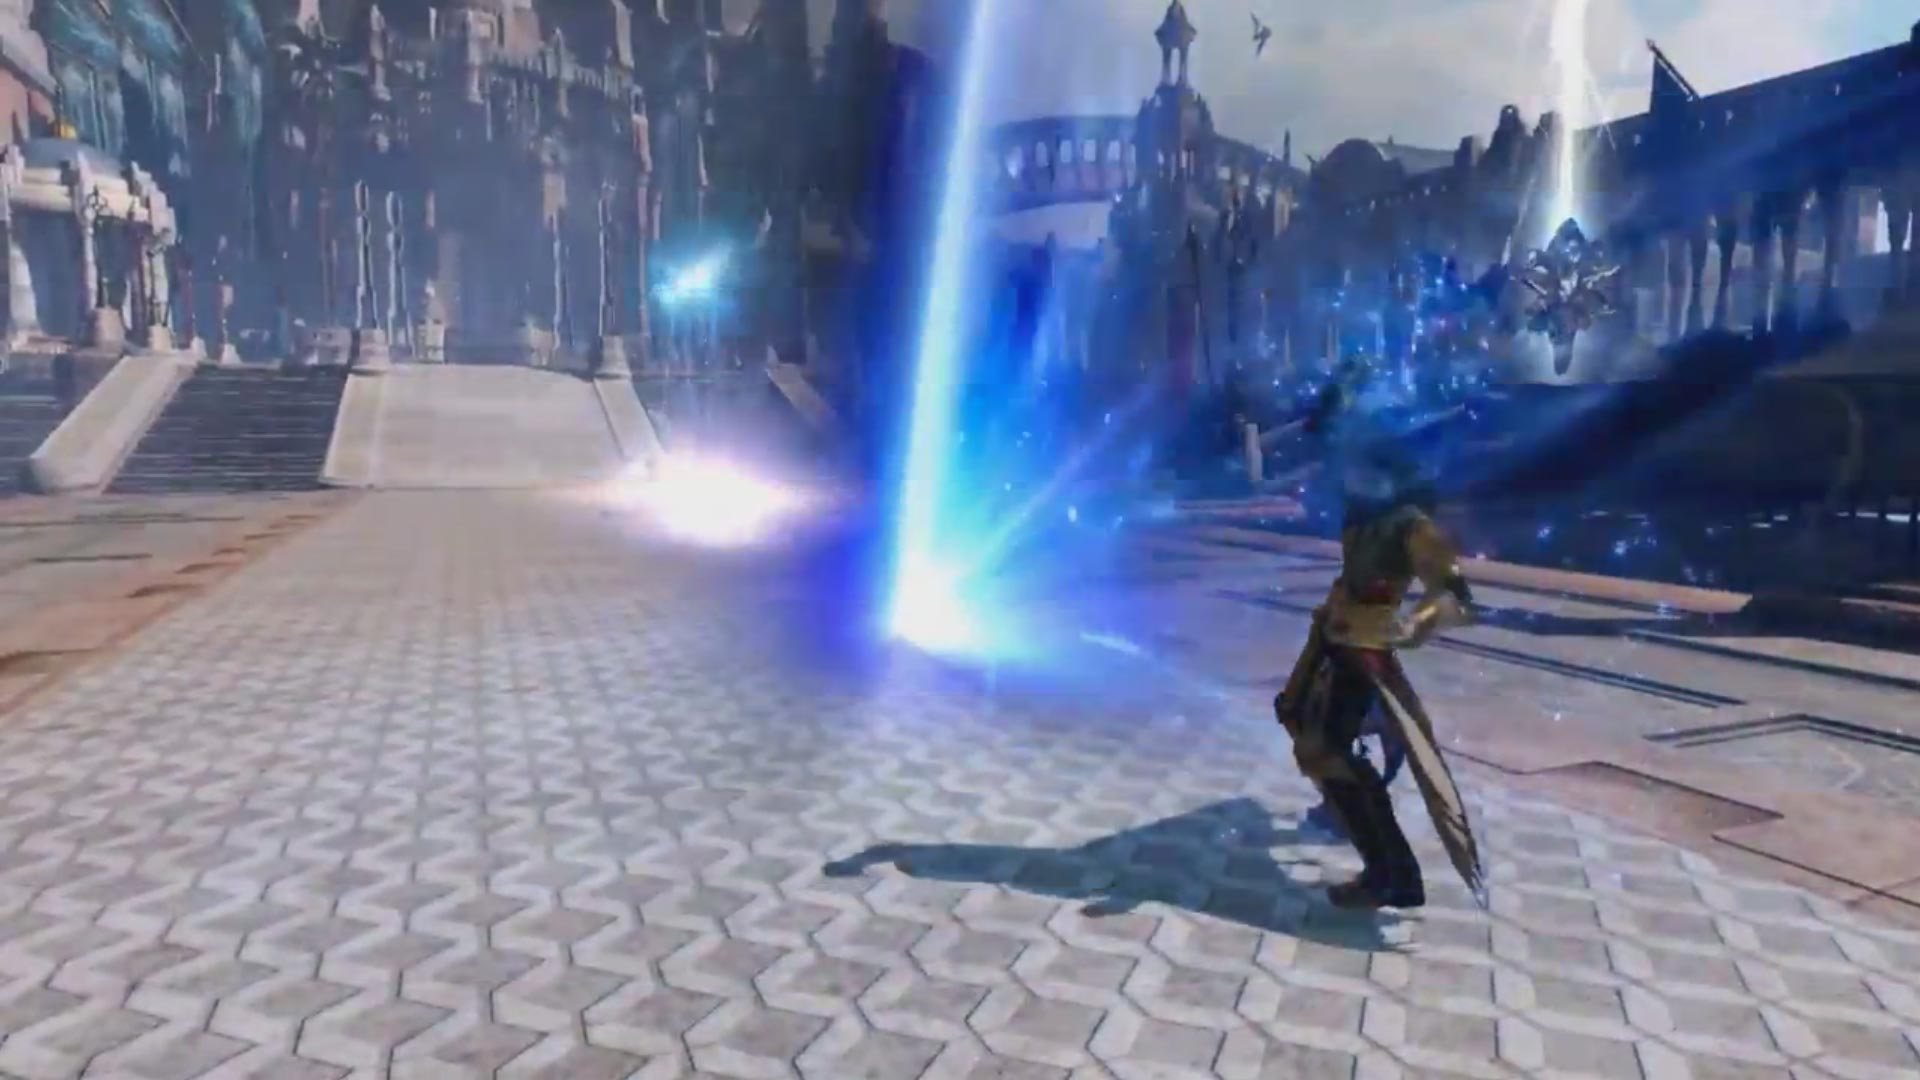 Dissidia Final Fantasy NT Vayne Reveal 7 out of 12 image gallery